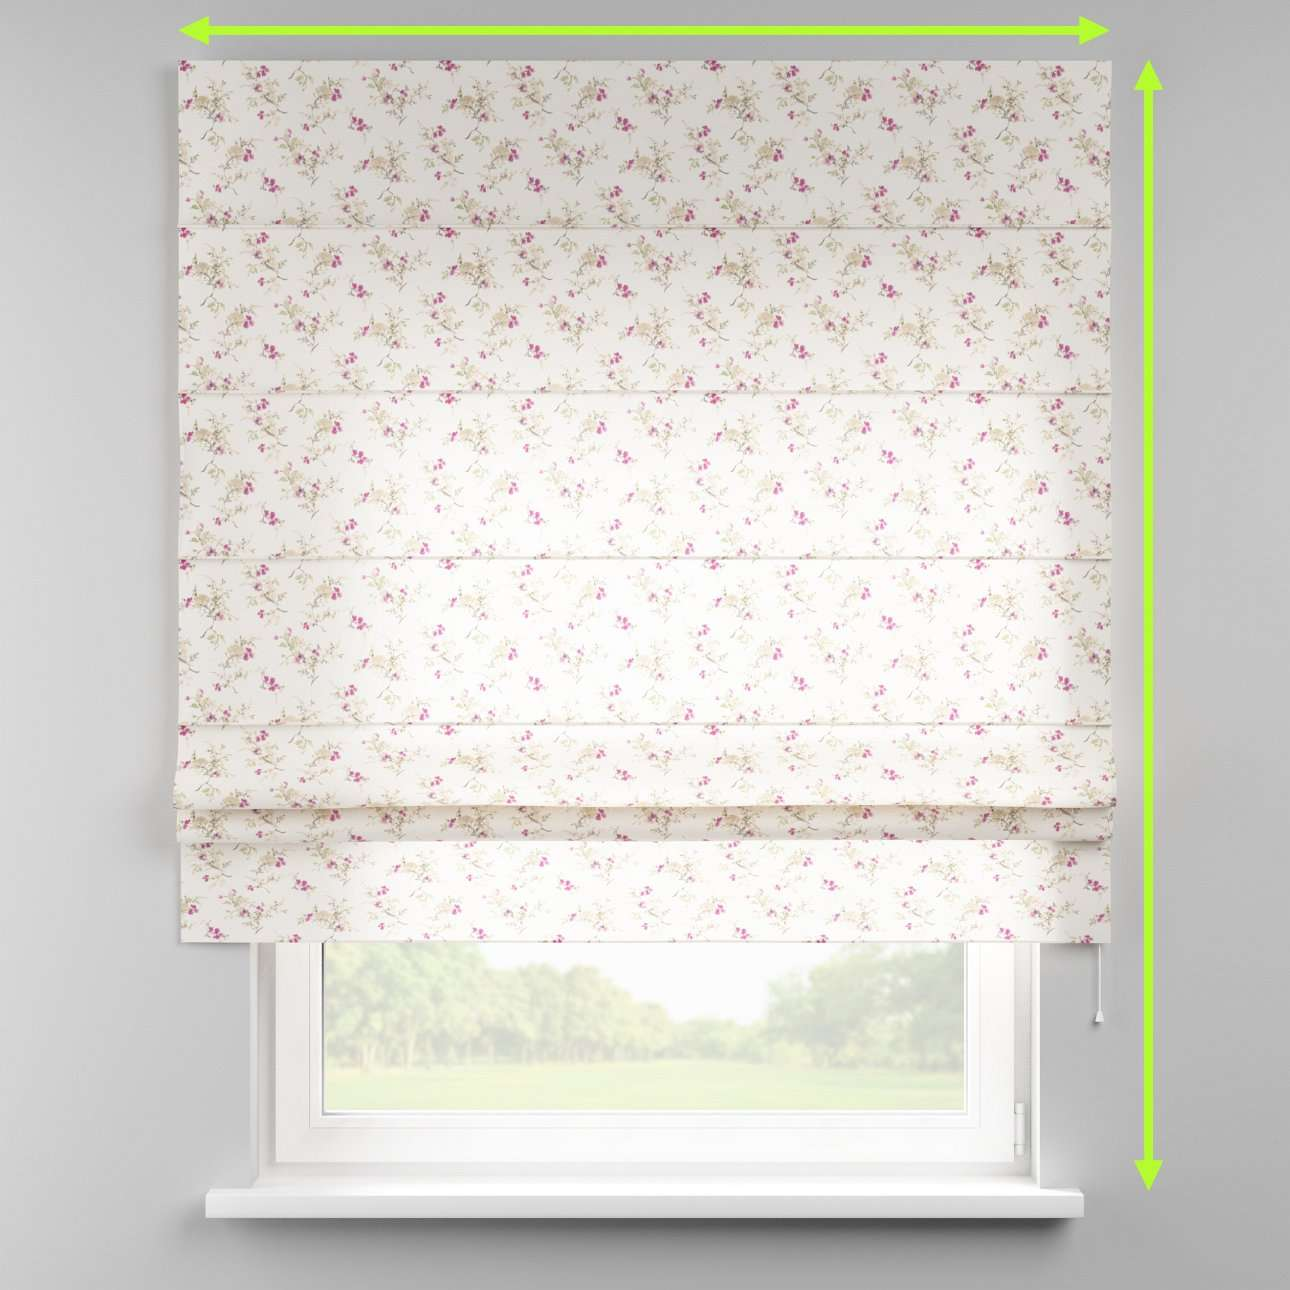 Padva roman blind  in collection Mirella, fabric: 141-13